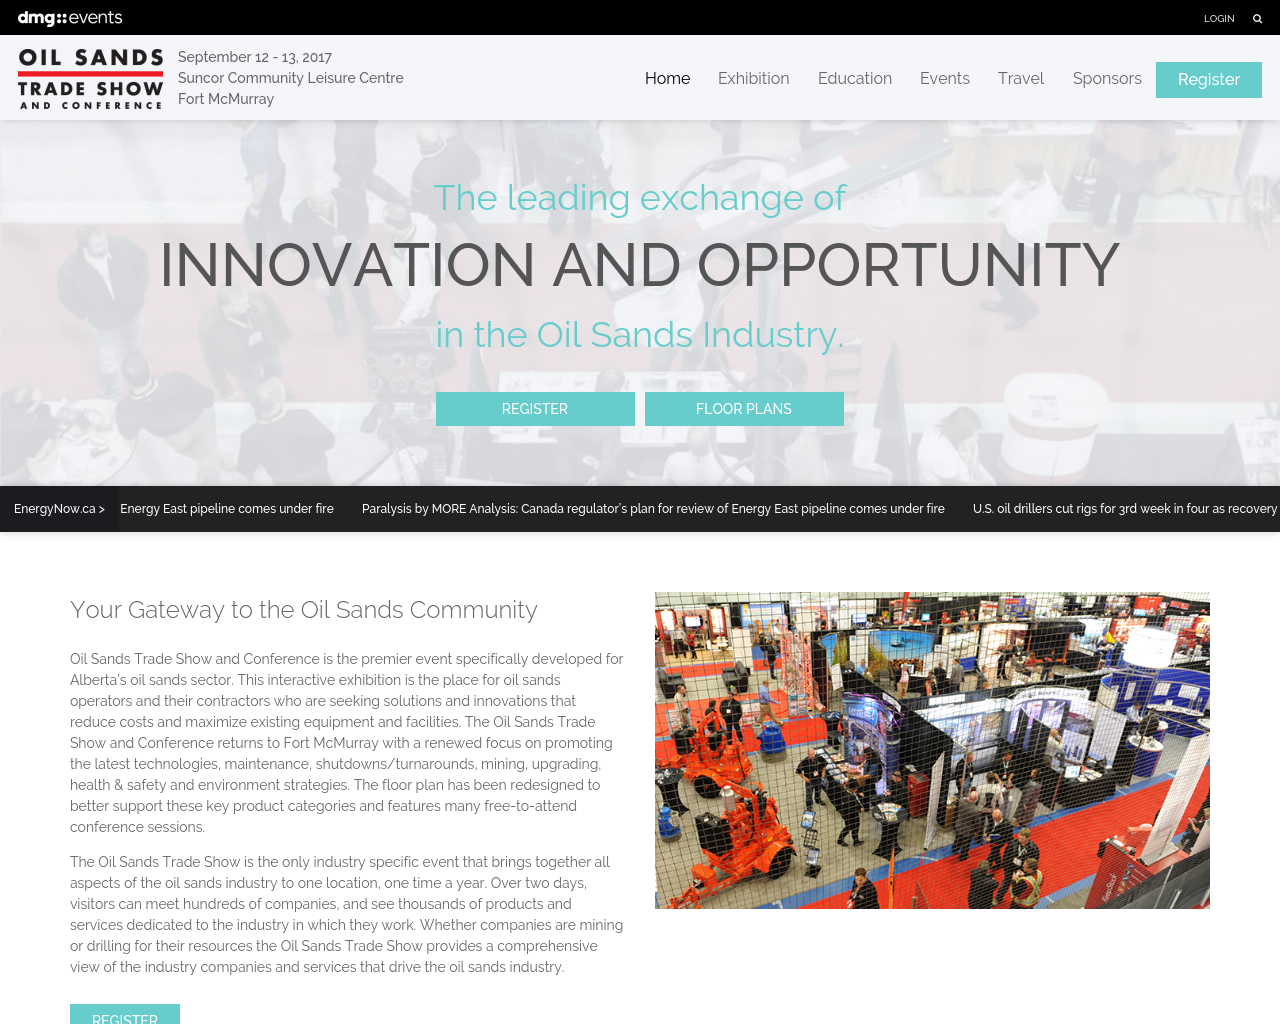 Oil-Sands-Trade-Show-and-Conference-Advertising-Reviews-Pricing